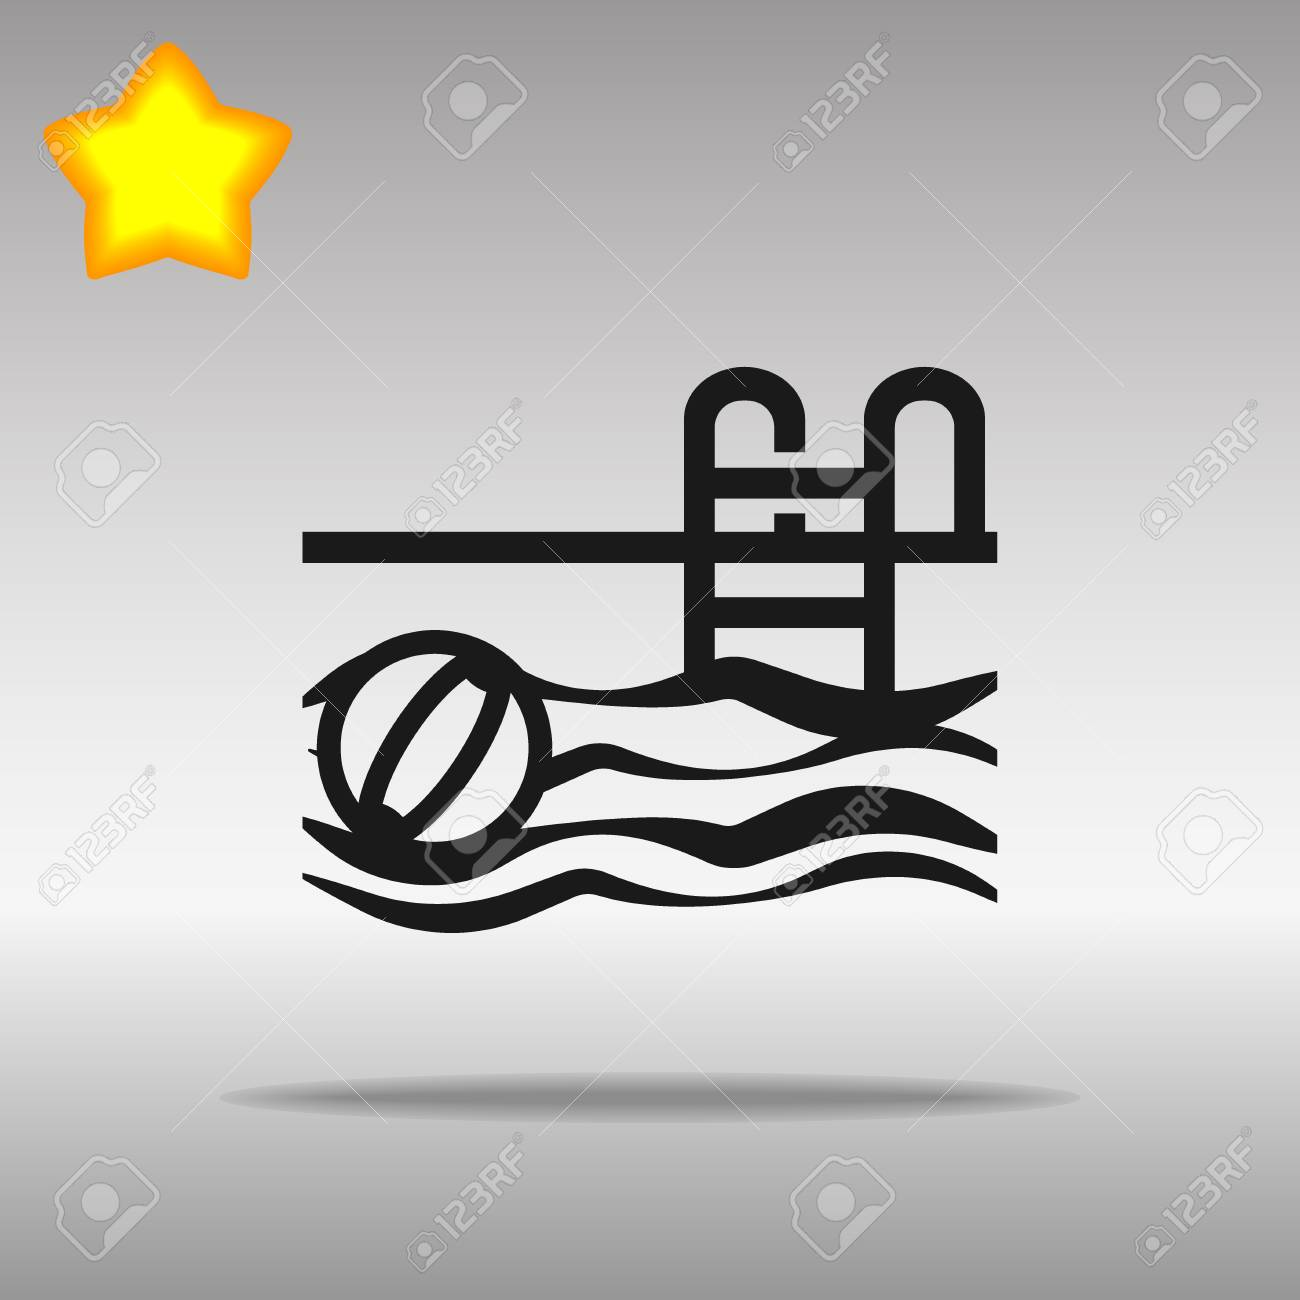 black Swimming Pool Icon button logo symbol concept high quality on the gray background - 82176450